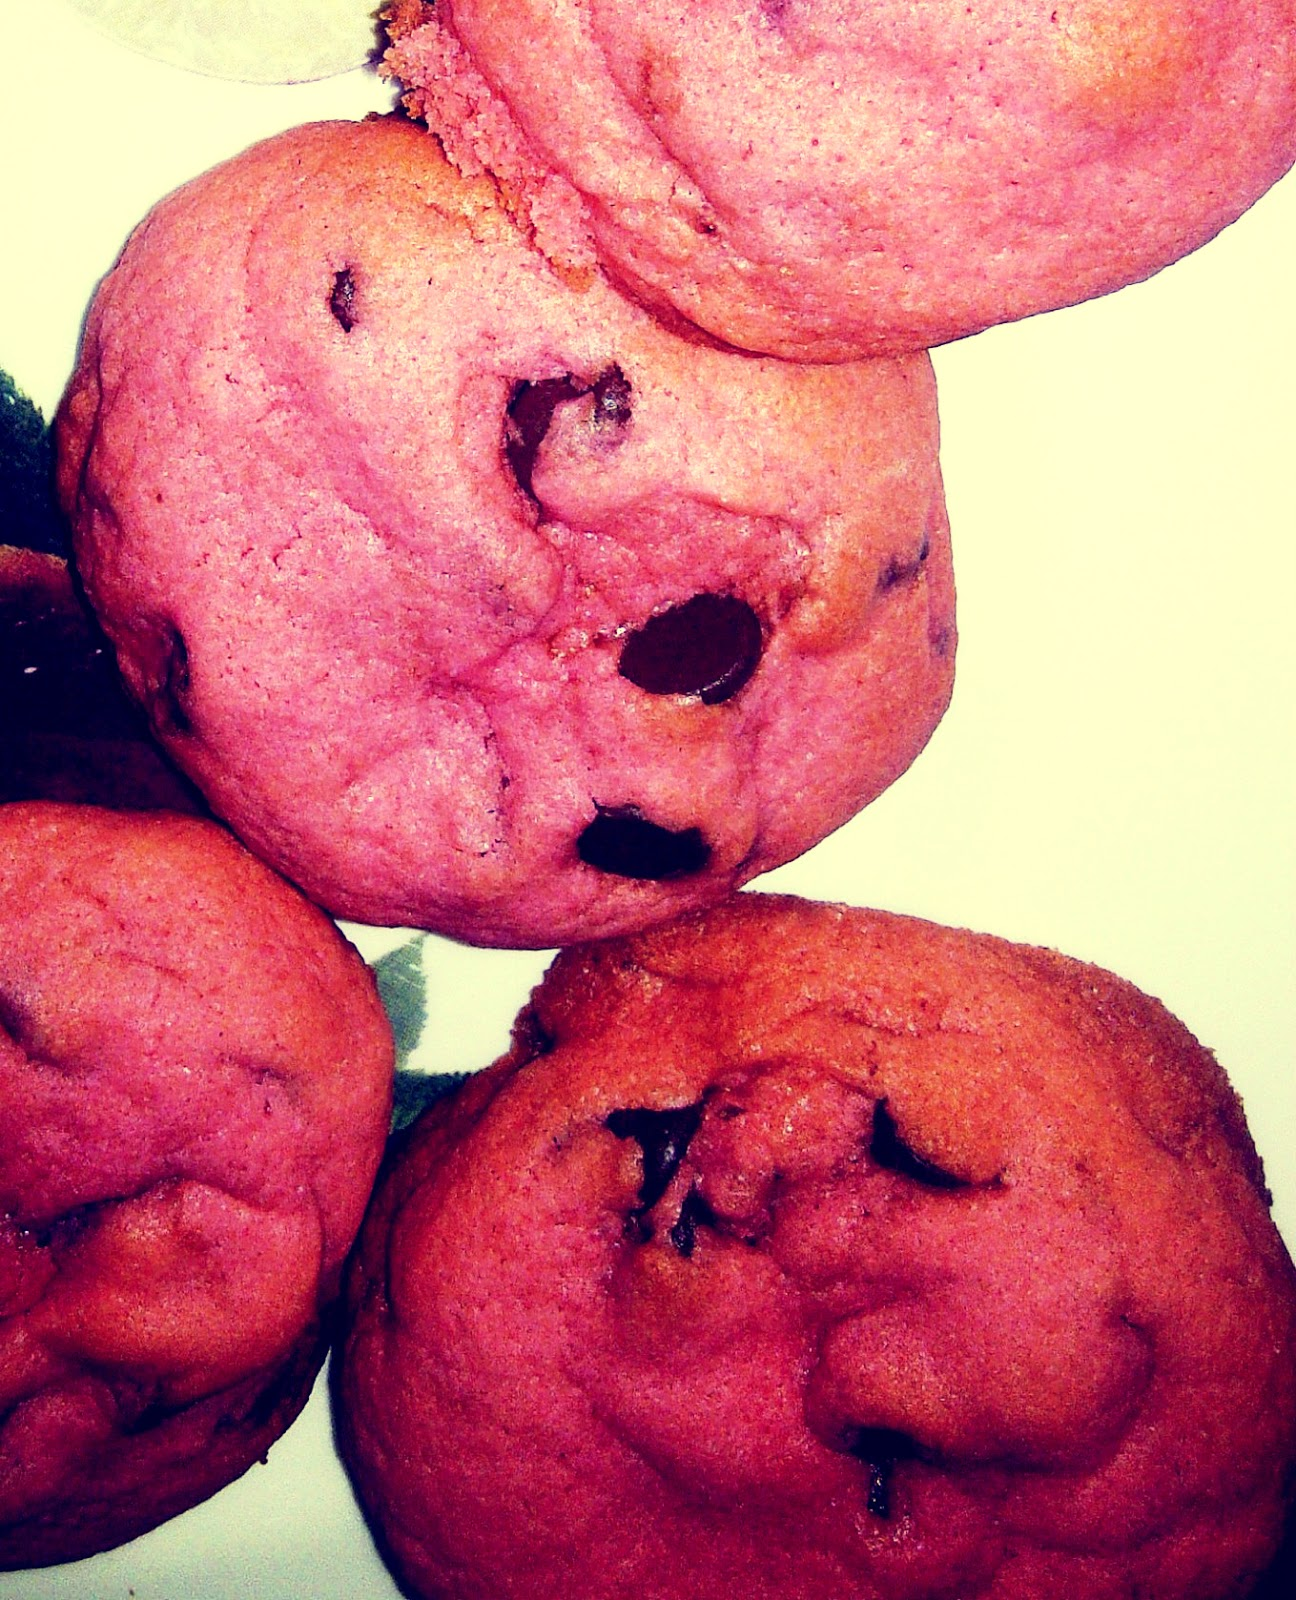 Majesty Bakes Cakes: PINK Chocolate Chip Cookies! Photos and Recipe!